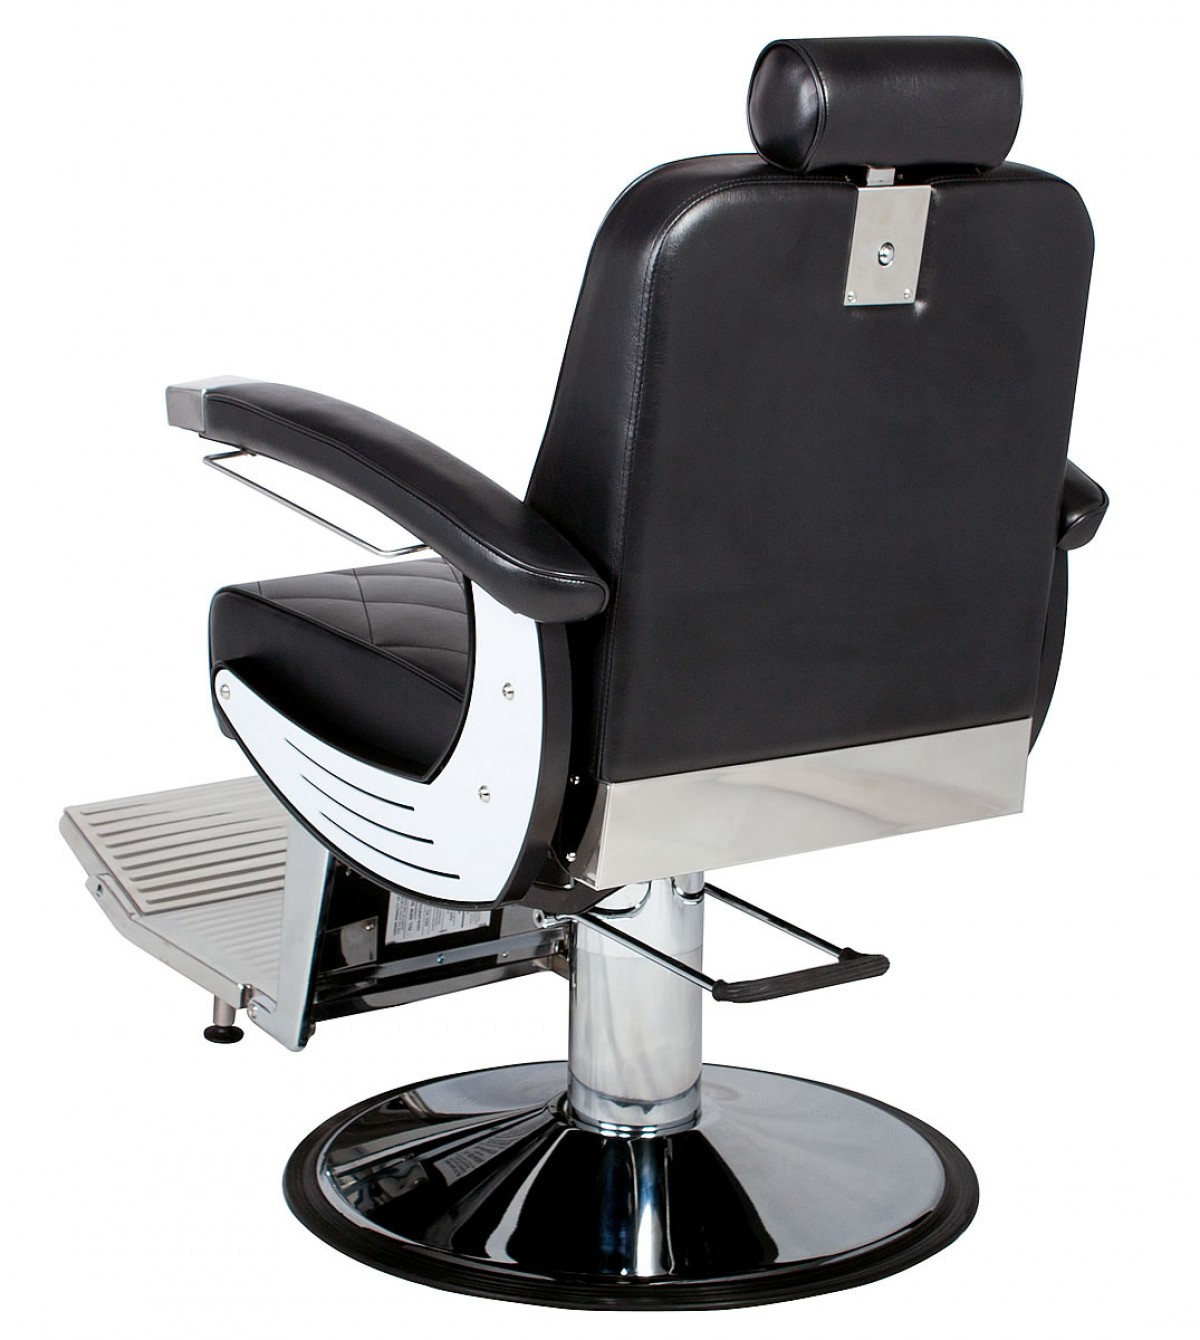 Quot Baron Quot Heavy Duty Barber Chair Barber Shop Chairs